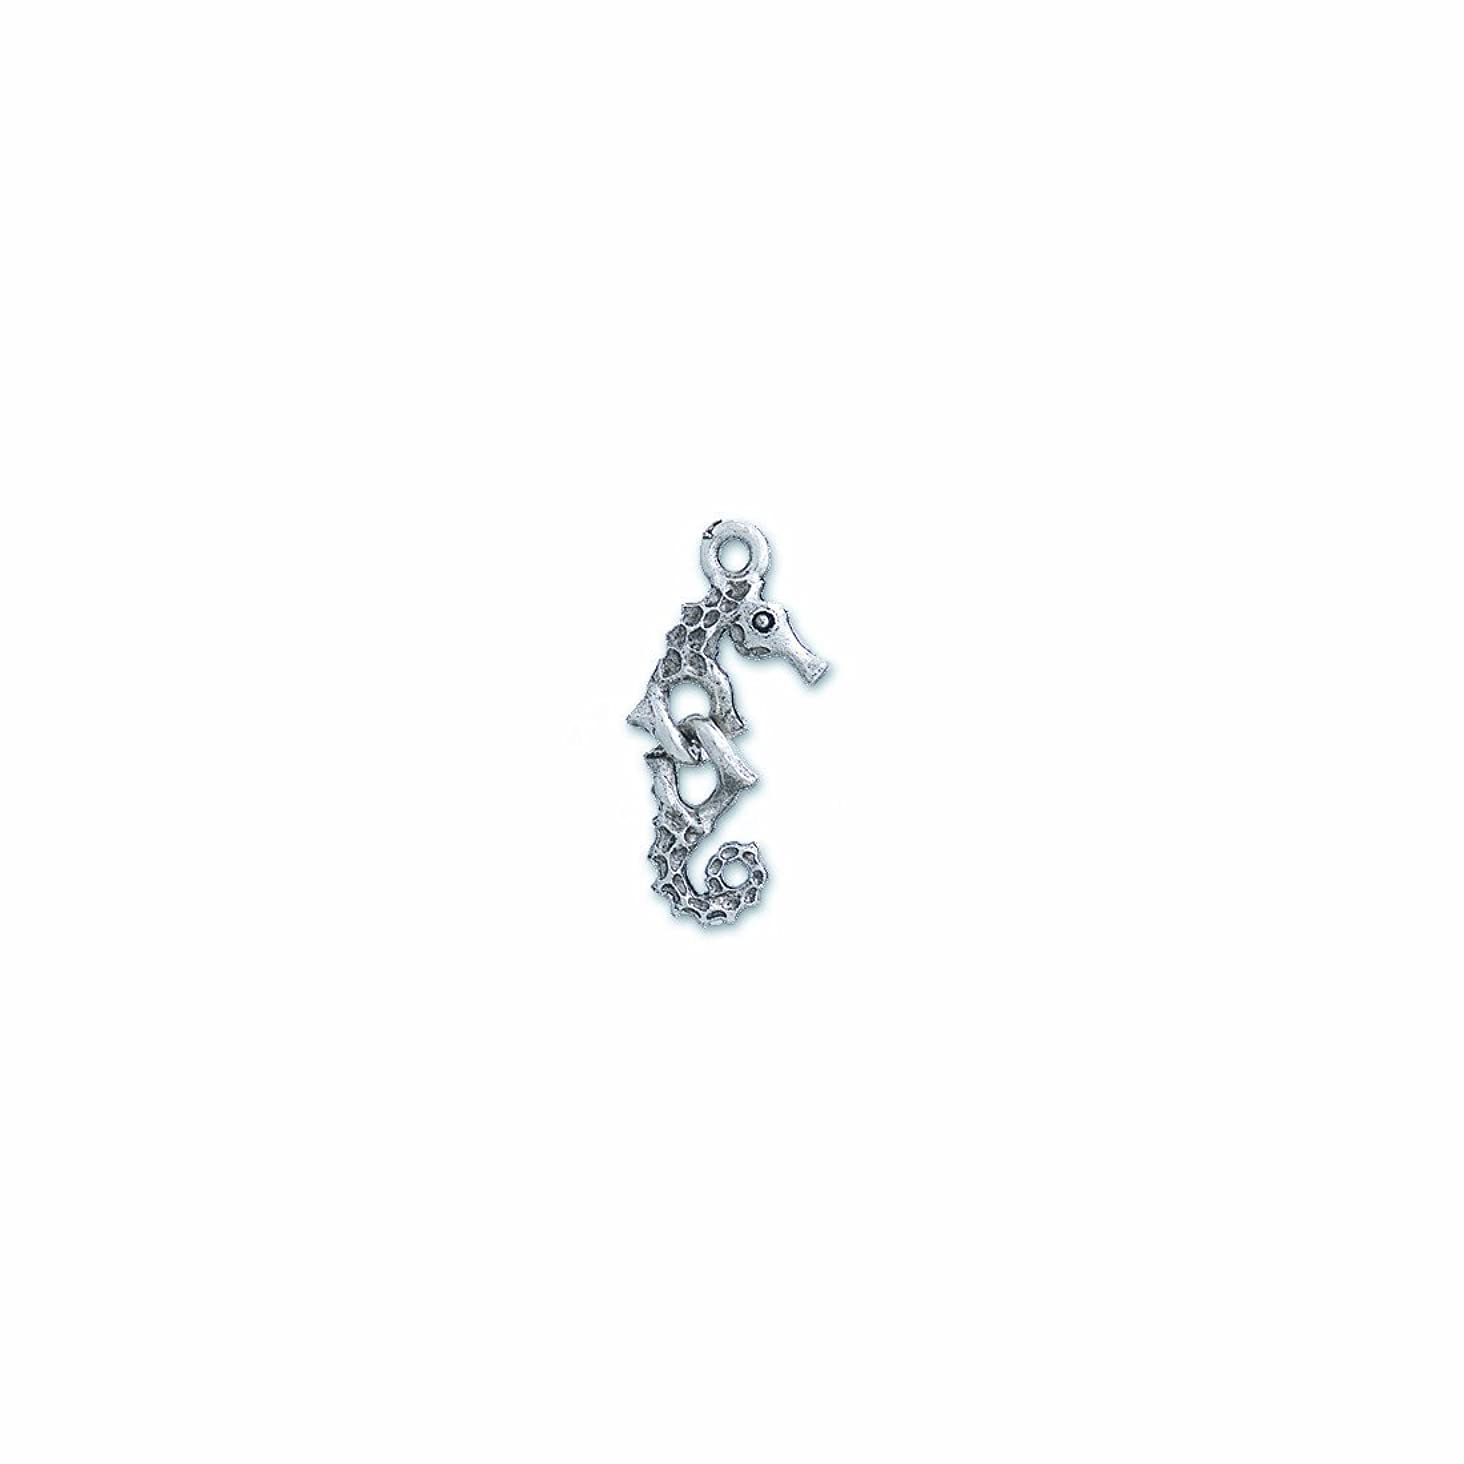 Shipwreck Beads Pewter Sectional Seahorse Charm, Silver, 10 by 26mm, 4-Piece